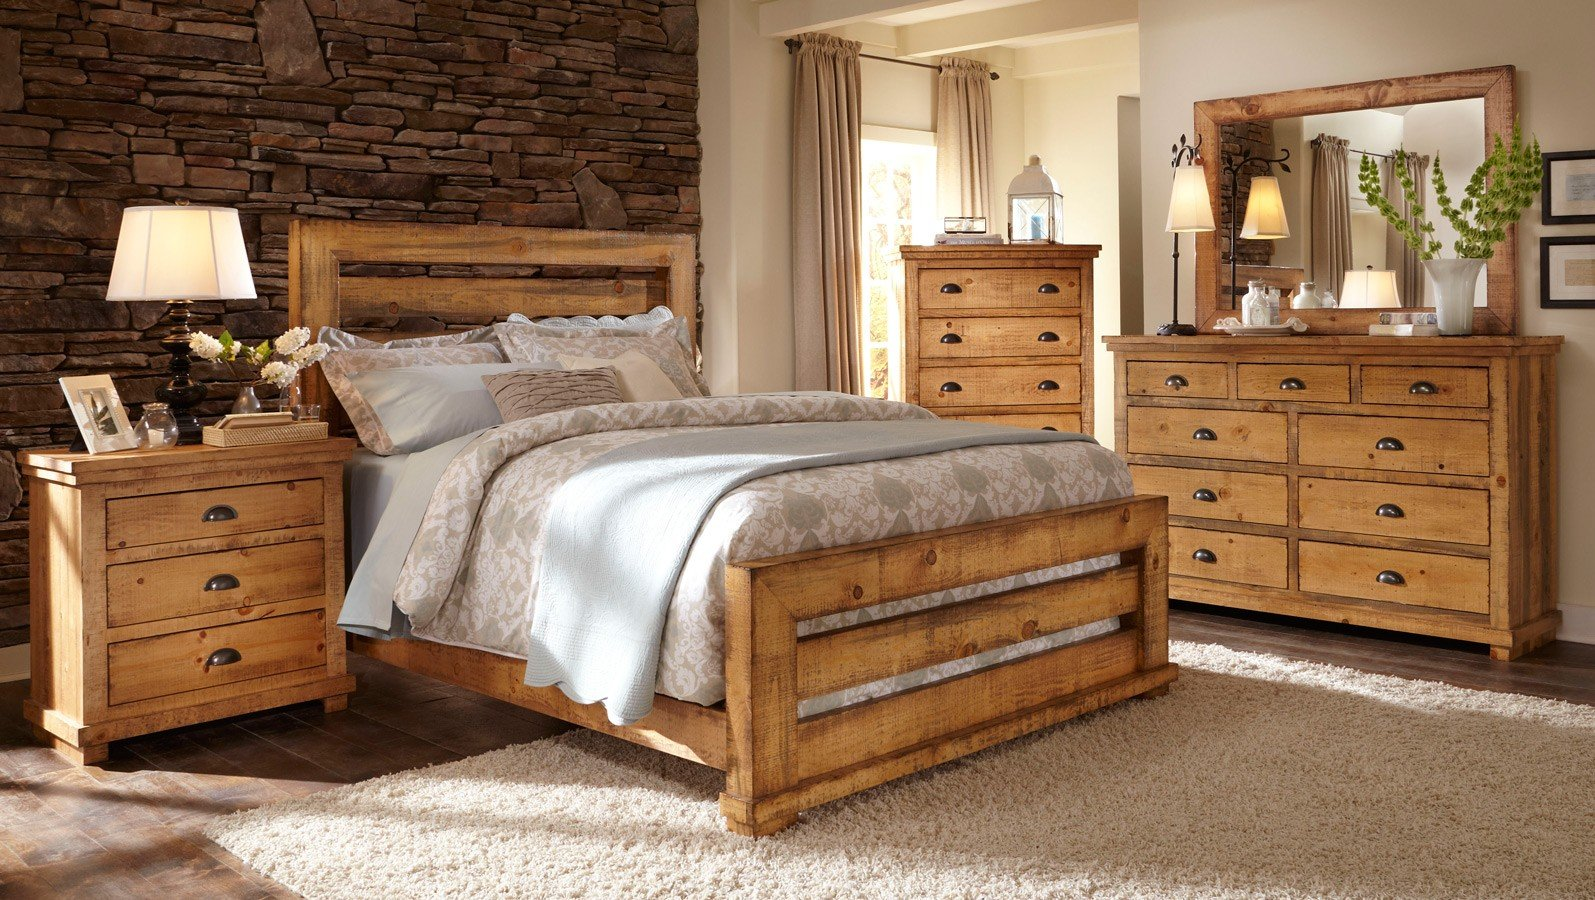 Willow Slat Bedroom Set (Distressed Pine) Progressive ...